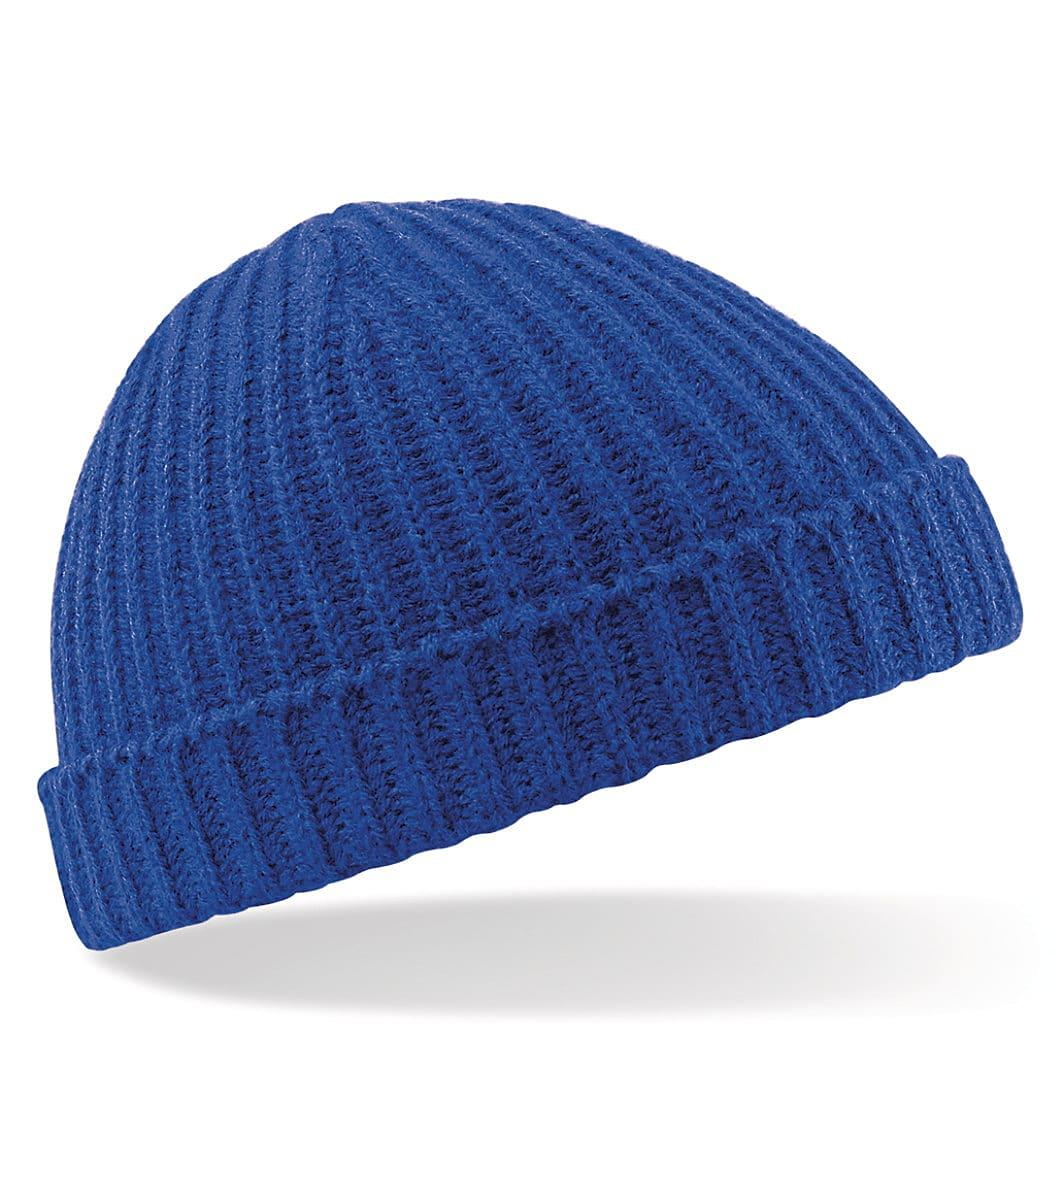 Beechfield Trawler Beanie Hat in Bright Royal (Product Code: B460)